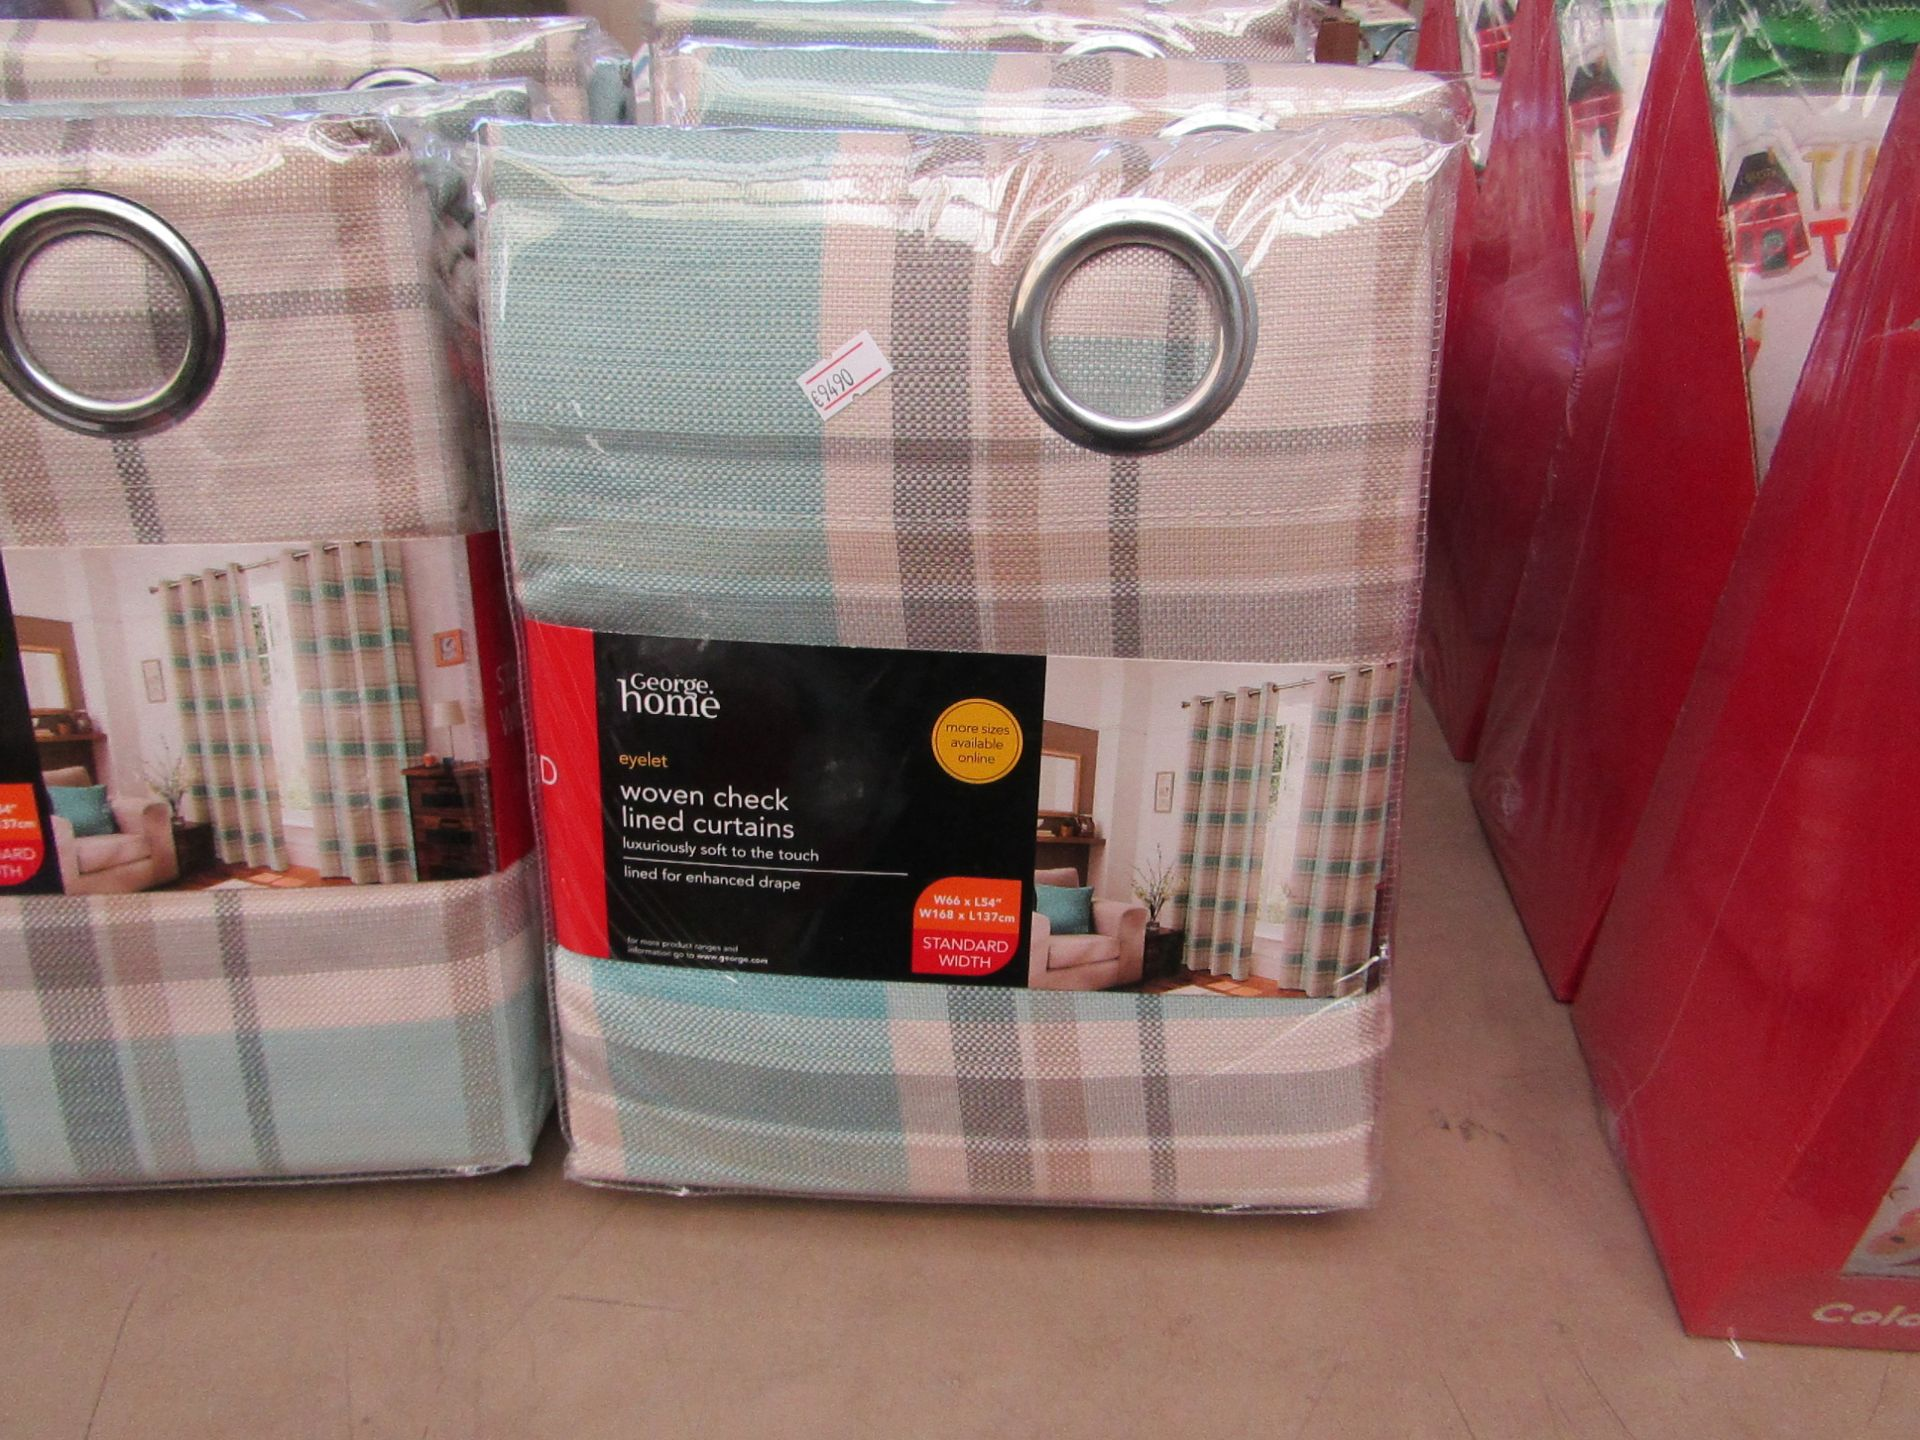 """Lot 4 - George Home woven checkered lined curtains, W 66 x L 54"""", new and packaged."""